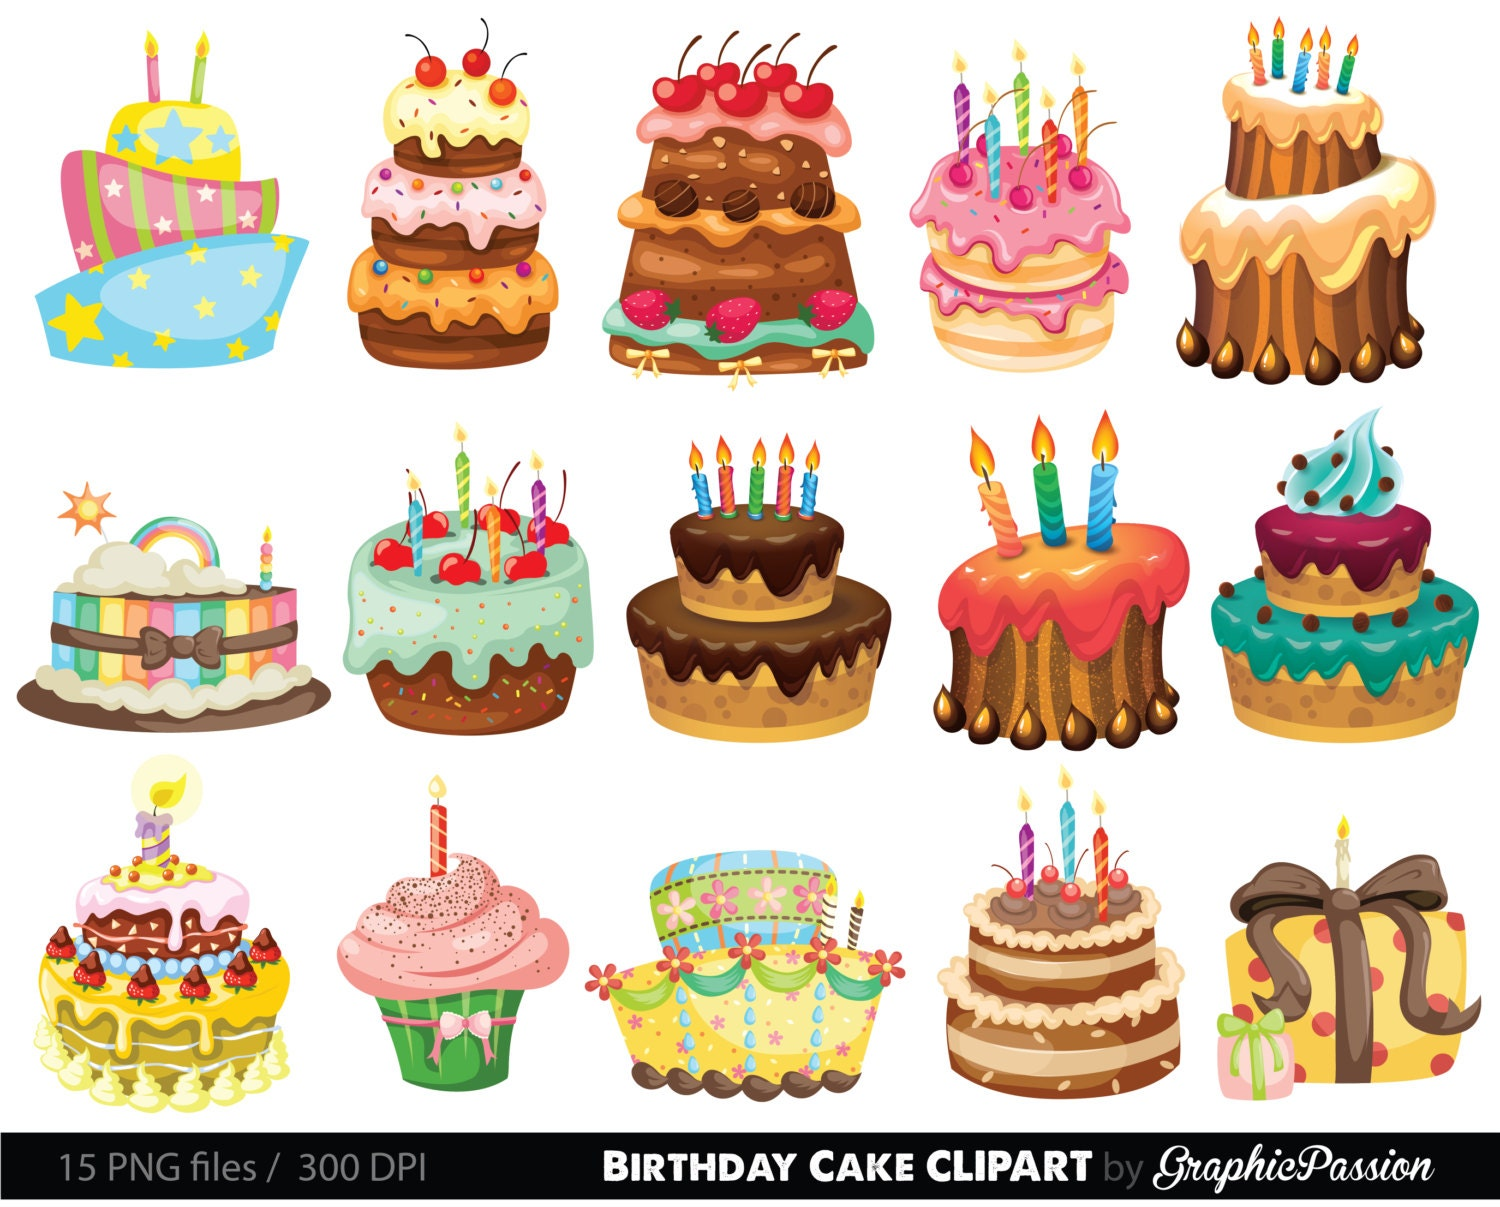 cake birthday clipart illustration cupcake clip cakes colorful cupcakes digital drawing party vector etsy zoom food happy graphic clipartpanda cute